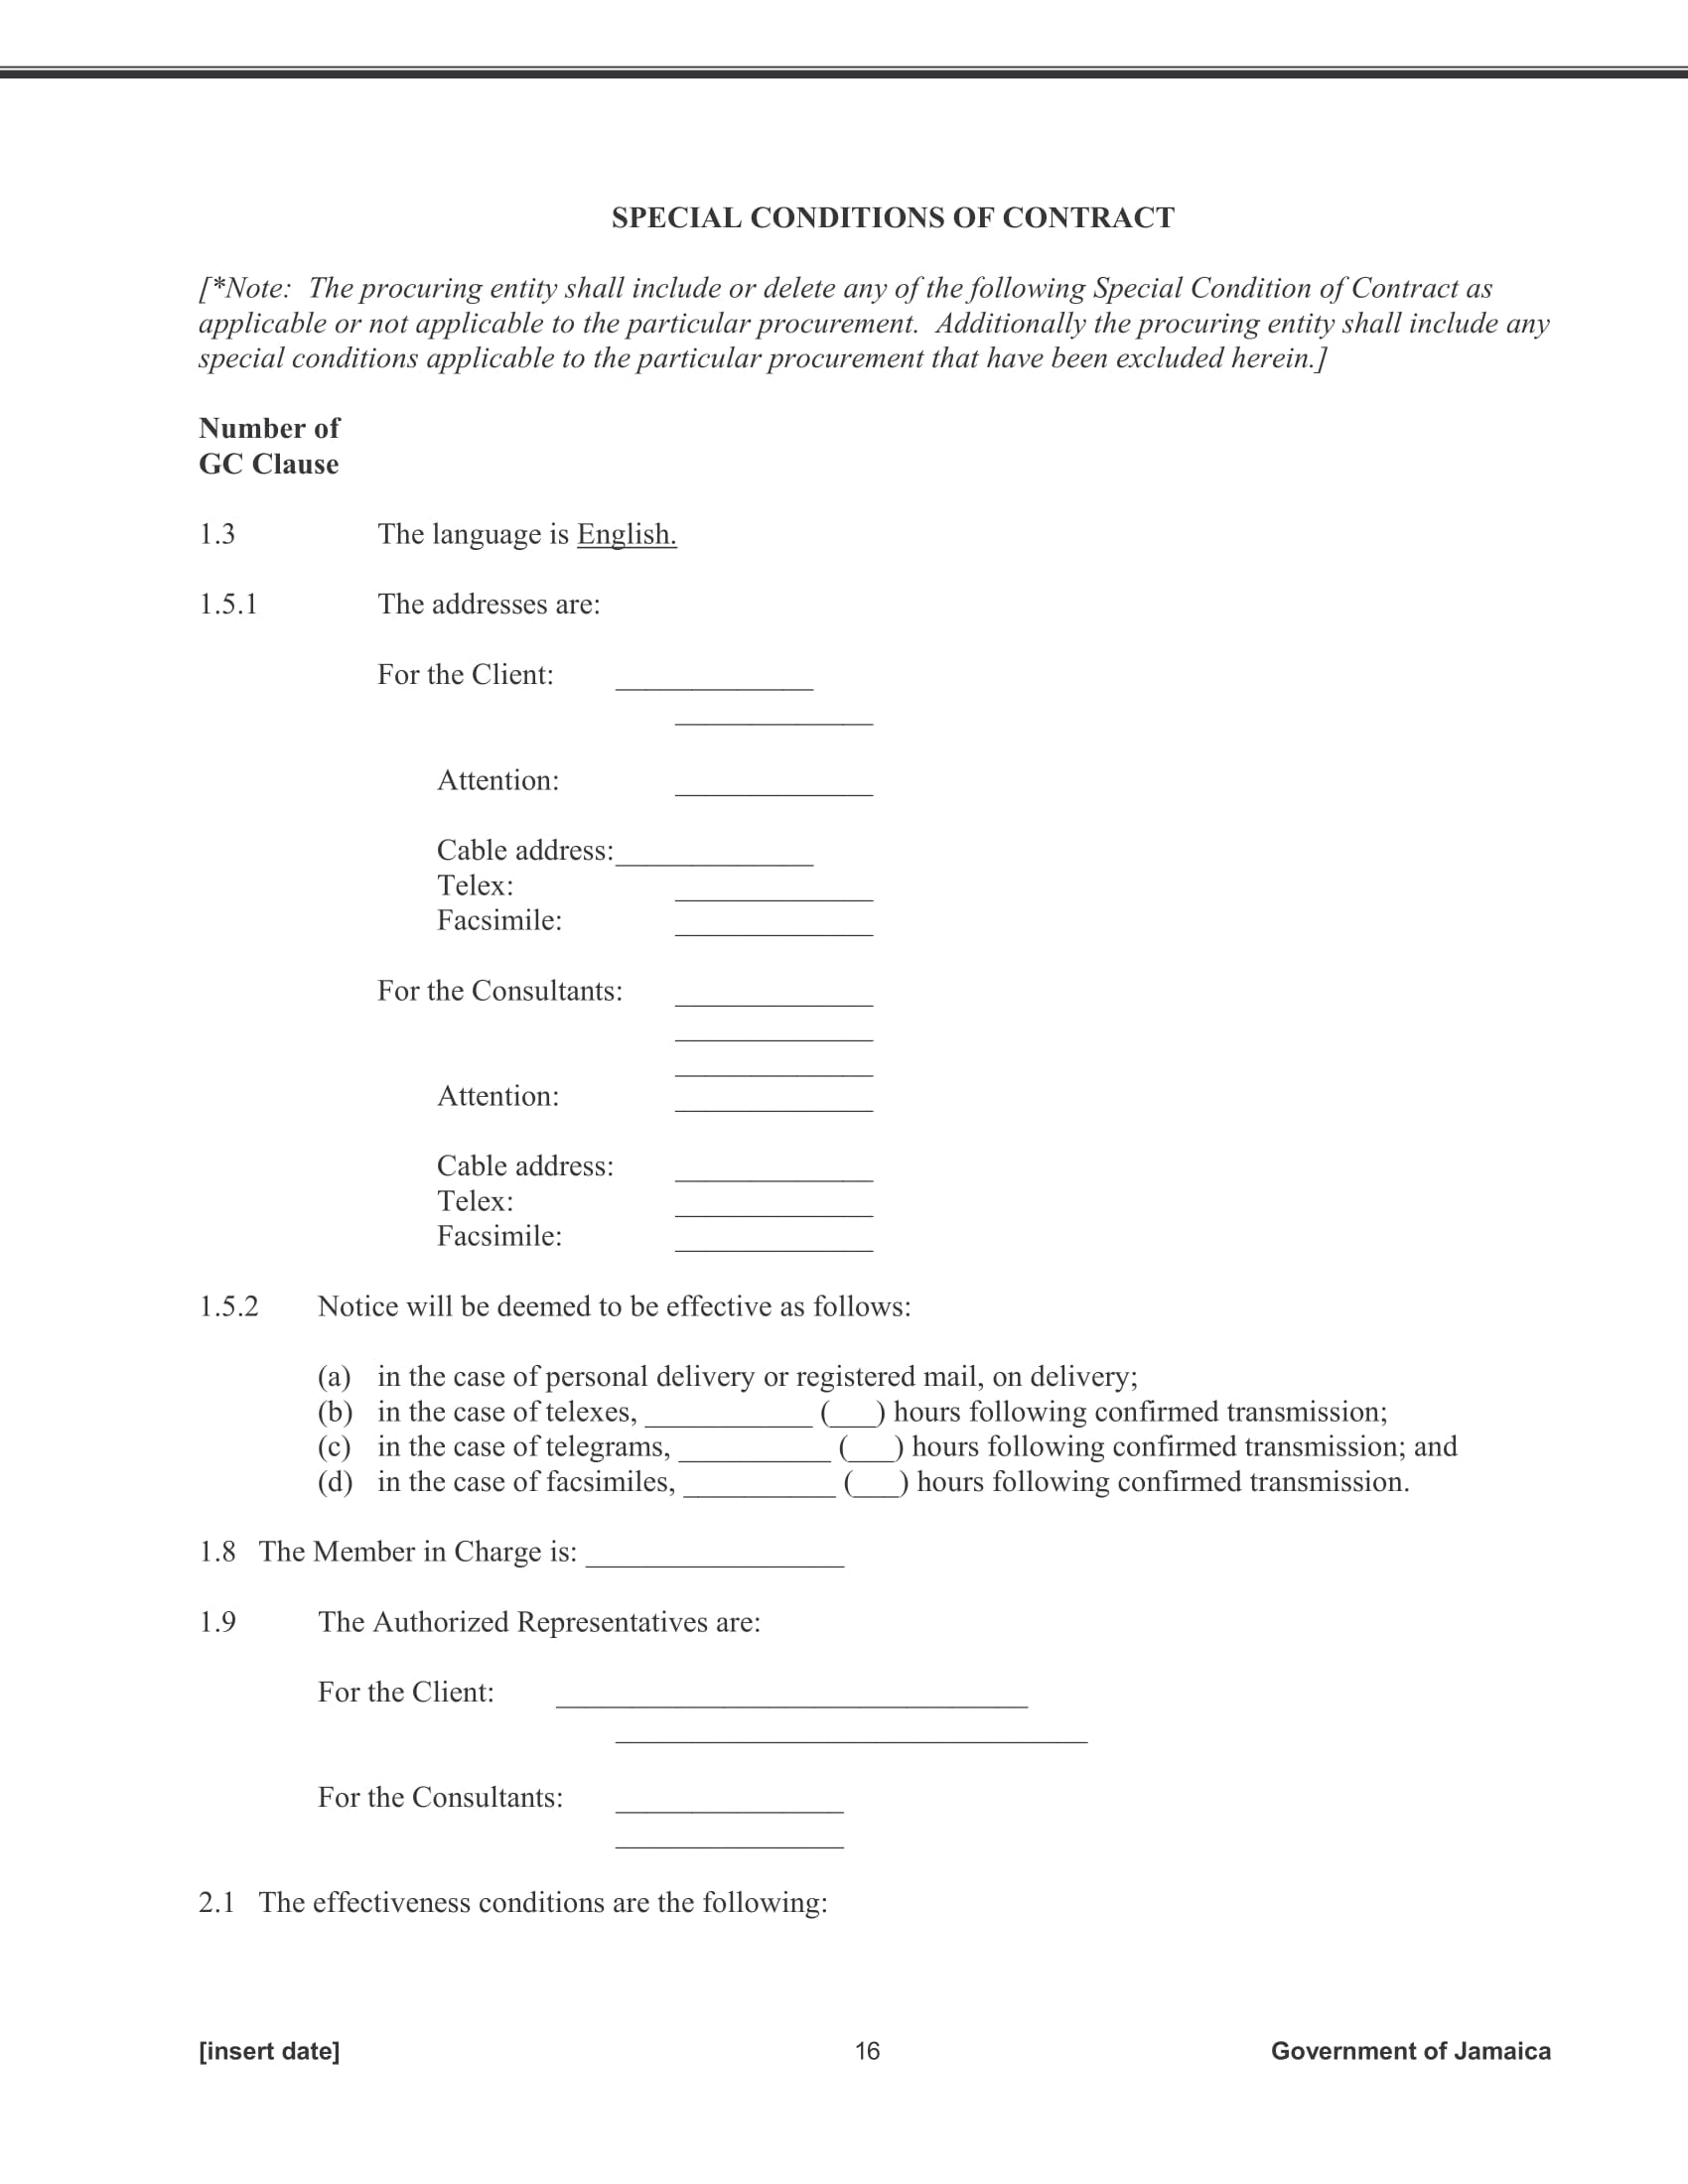 consulting services procurement contract form 16